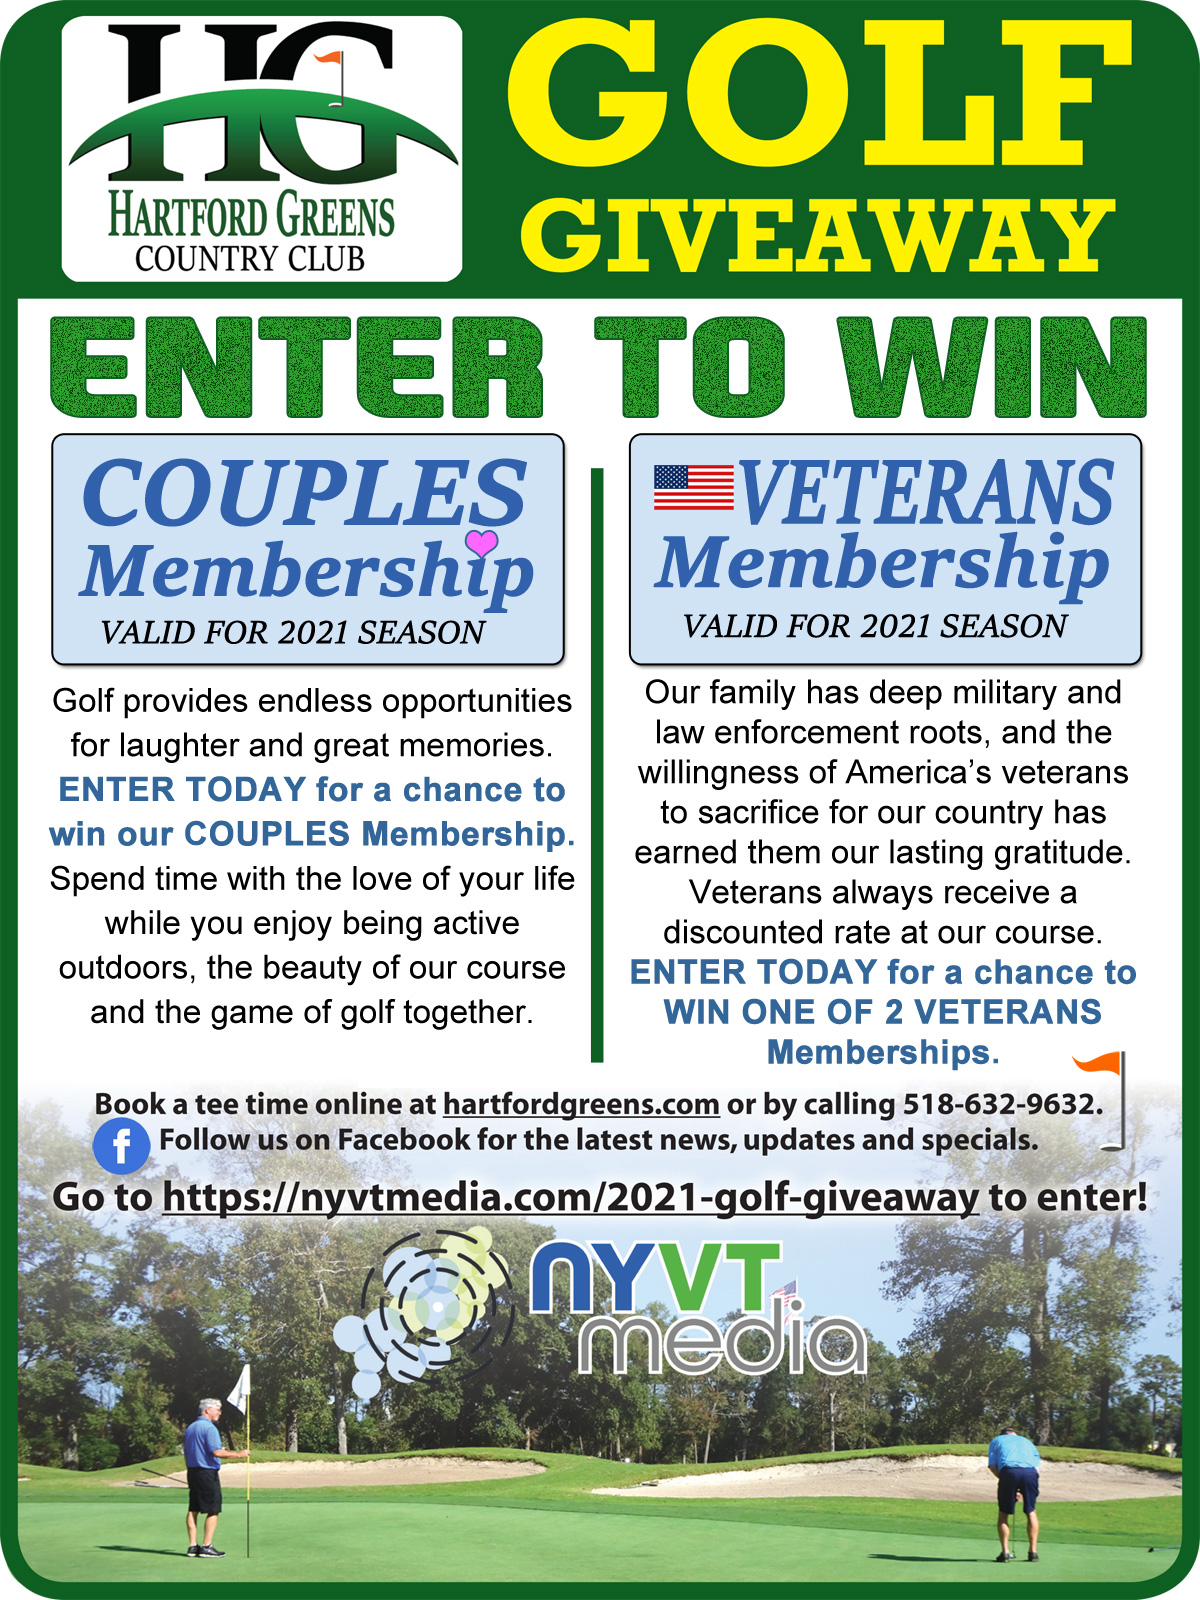 Enter Hartford Greens Country Club Golf Membership Giveaway Contest